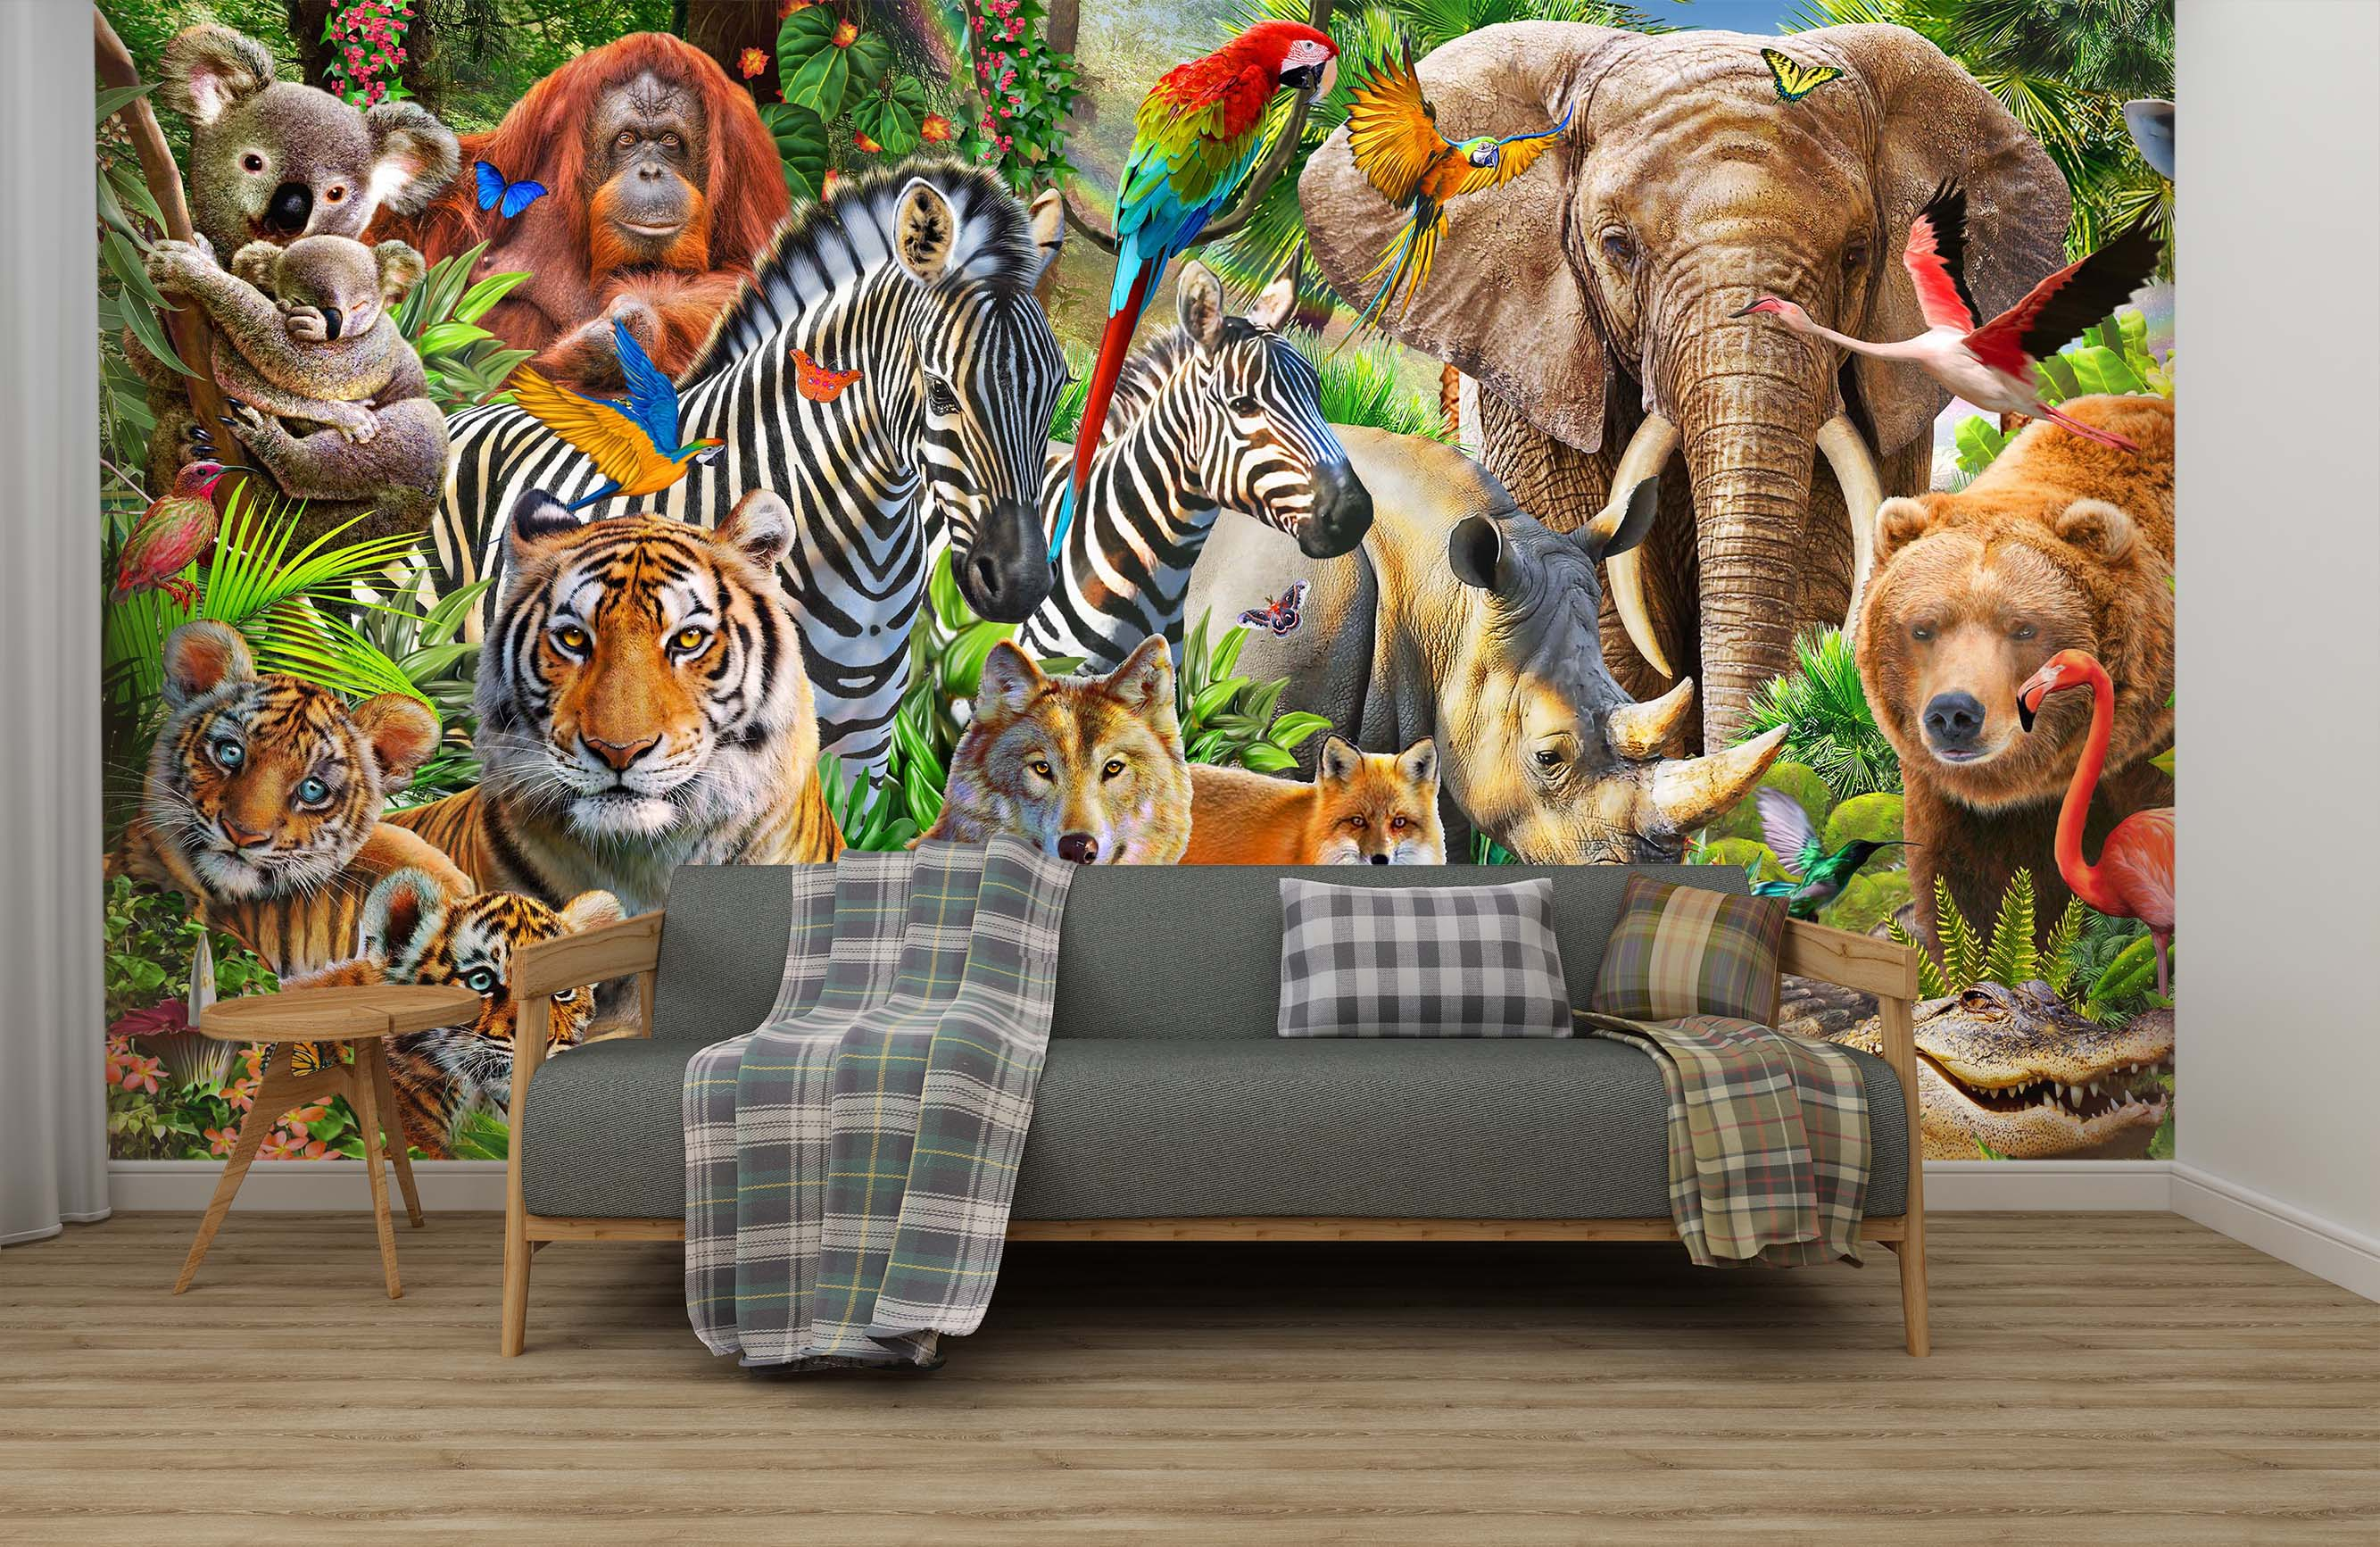 3D Animal World 1424 Adrian Chesterman Wall Mural Wall Murals